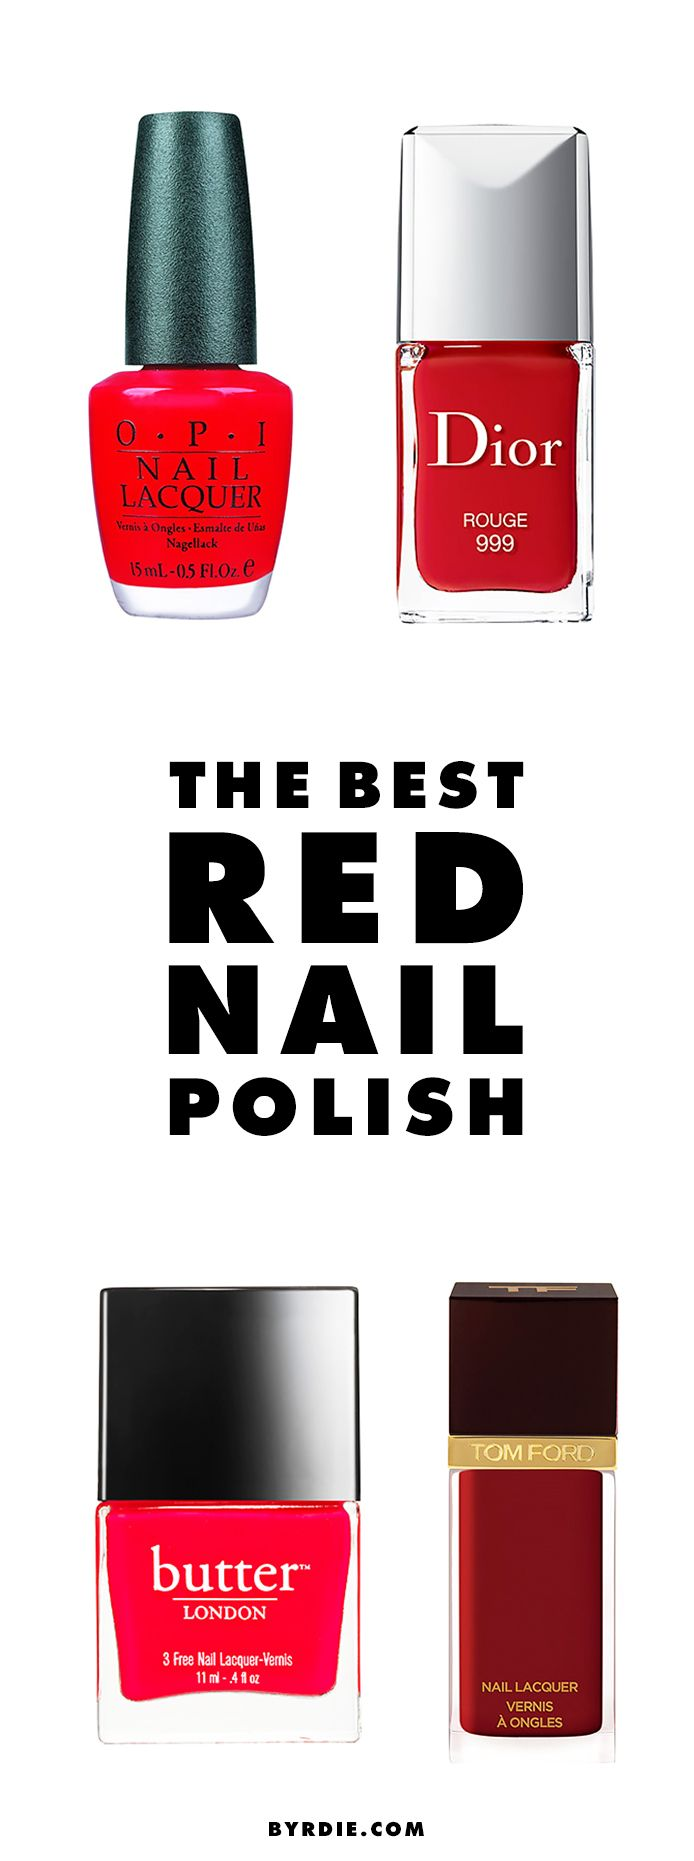 How to de clutter your beauty cabinet kendi everyday - The 1 Red Nail Polish According To The Internet